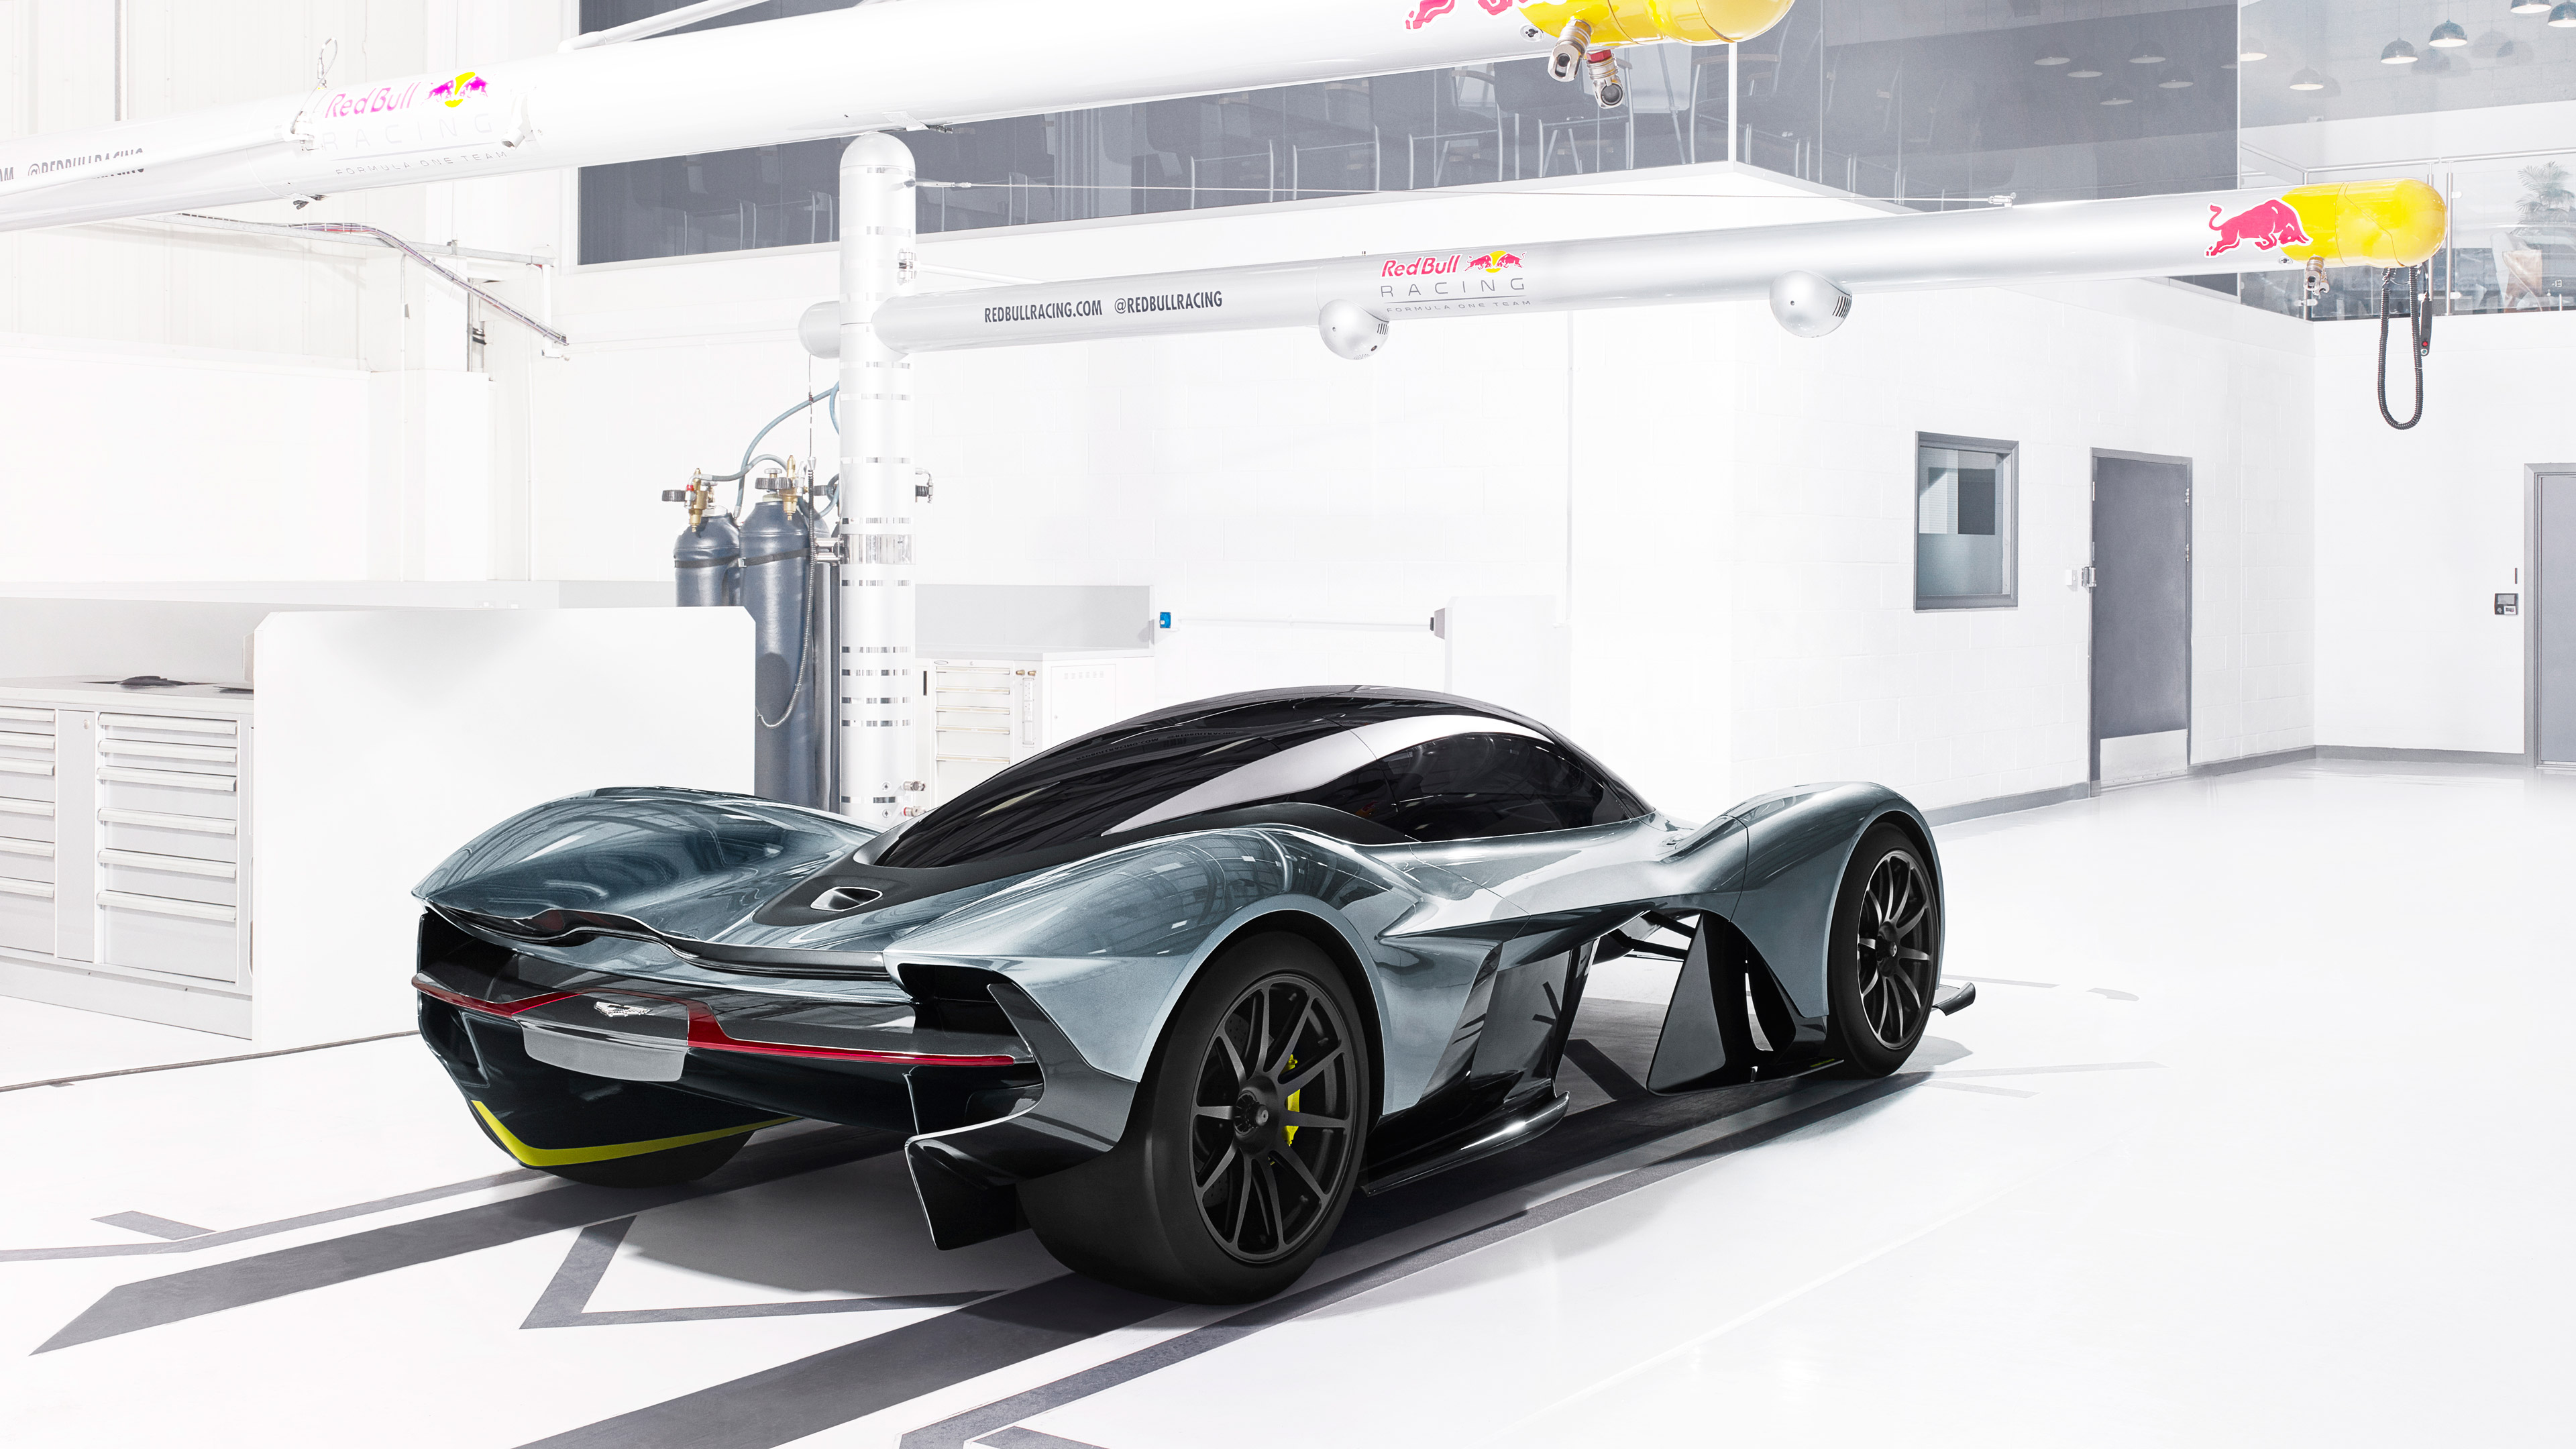 aston martin am rb 001 1539104602 - Aston Martin AM RB 001 - cars wallpapers, aston martin wallpapers